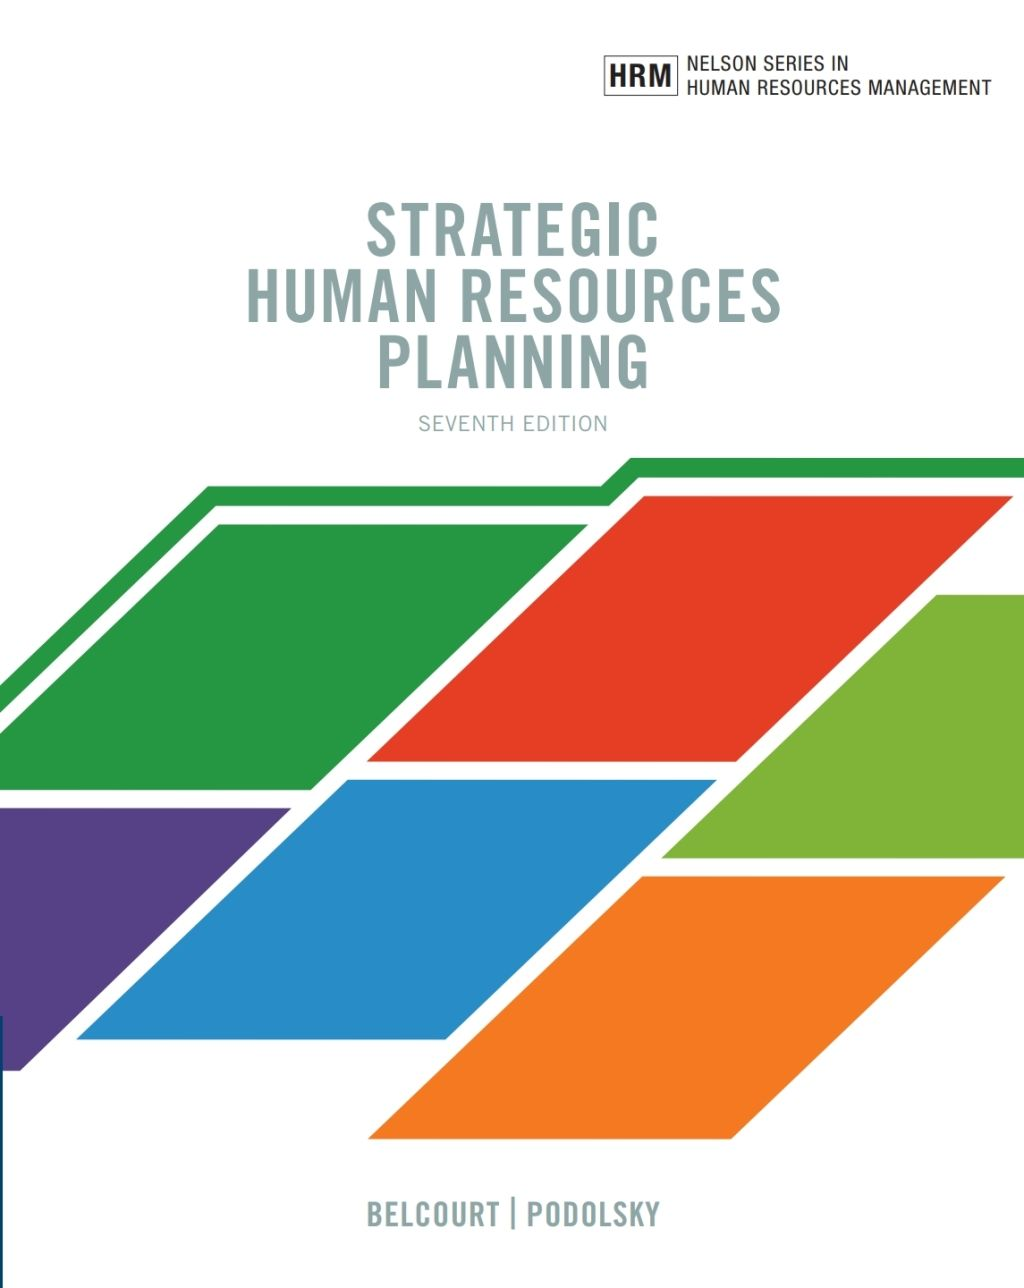 Strategic Human Resources Planning Ebook Human Resources Management Information Systems Online Web Design